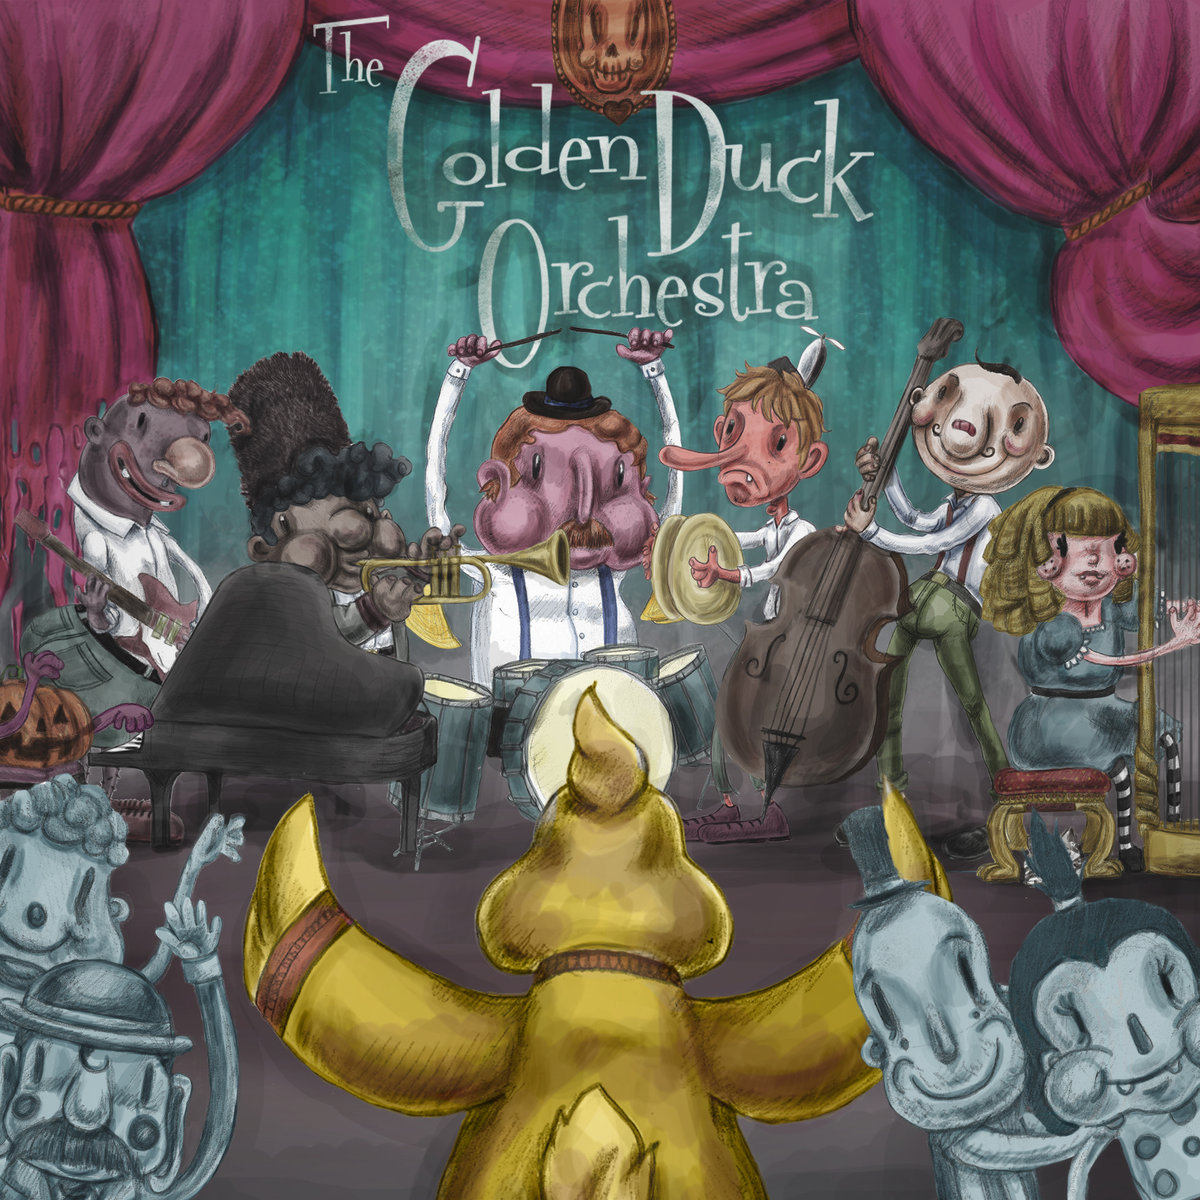 Golden Duck Orchestra - My Little Kingdom @ 'Golden Duck Orchestra' album (alternative, brazilian music)